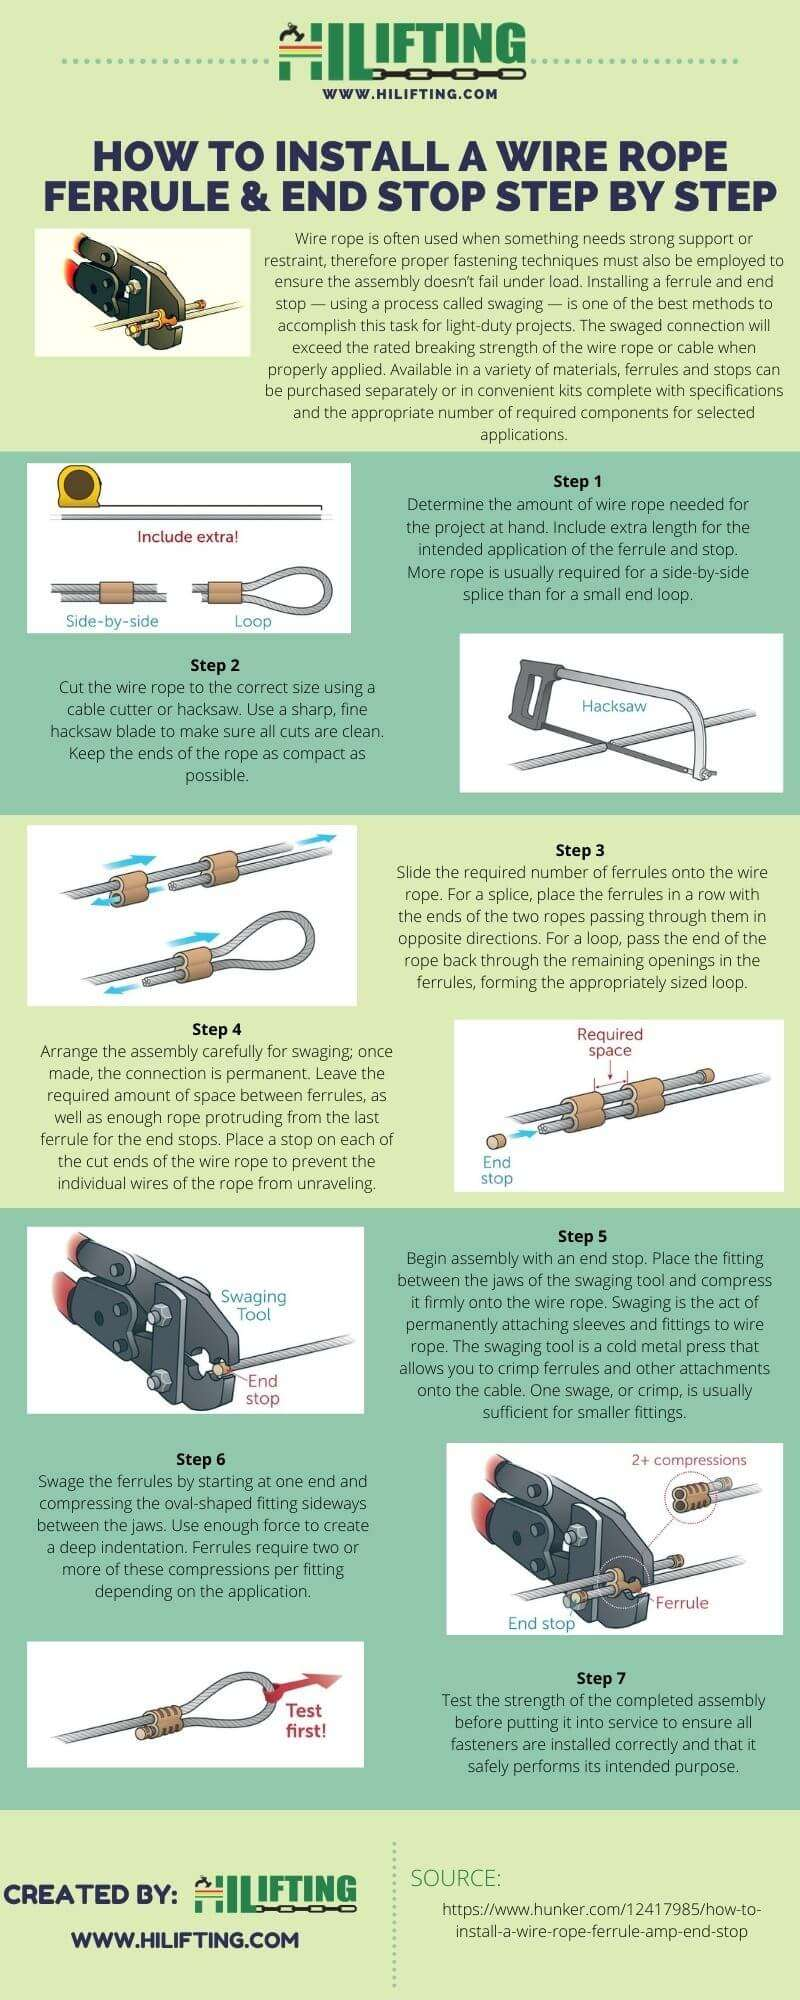 How To Install A Wire Rope Ferrule & End Stop Step By Step